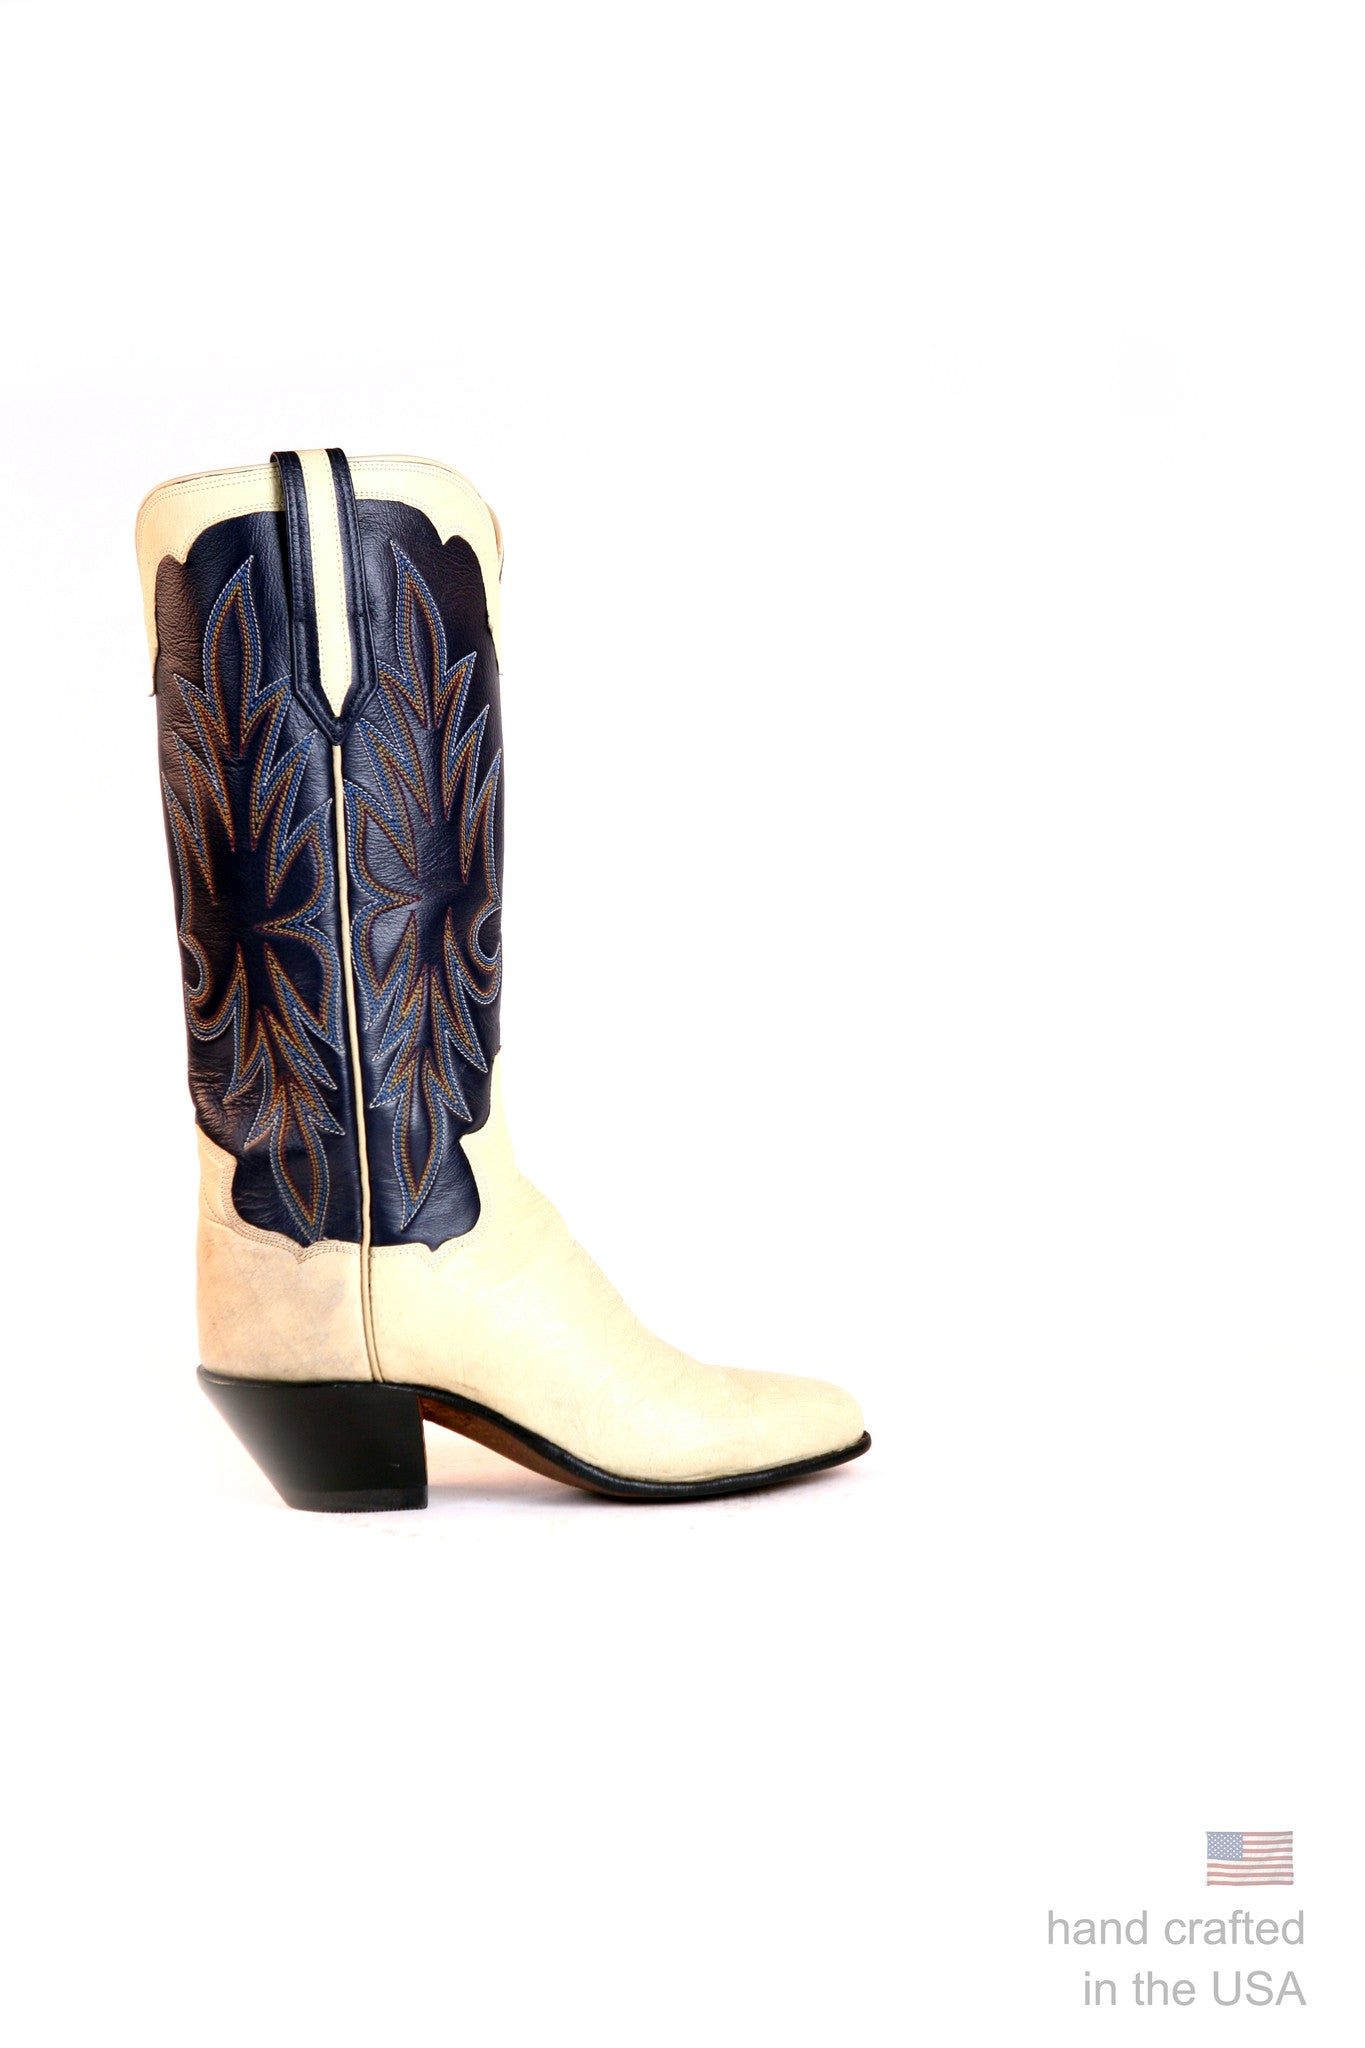 Singles: Boot 0038: Size 5D